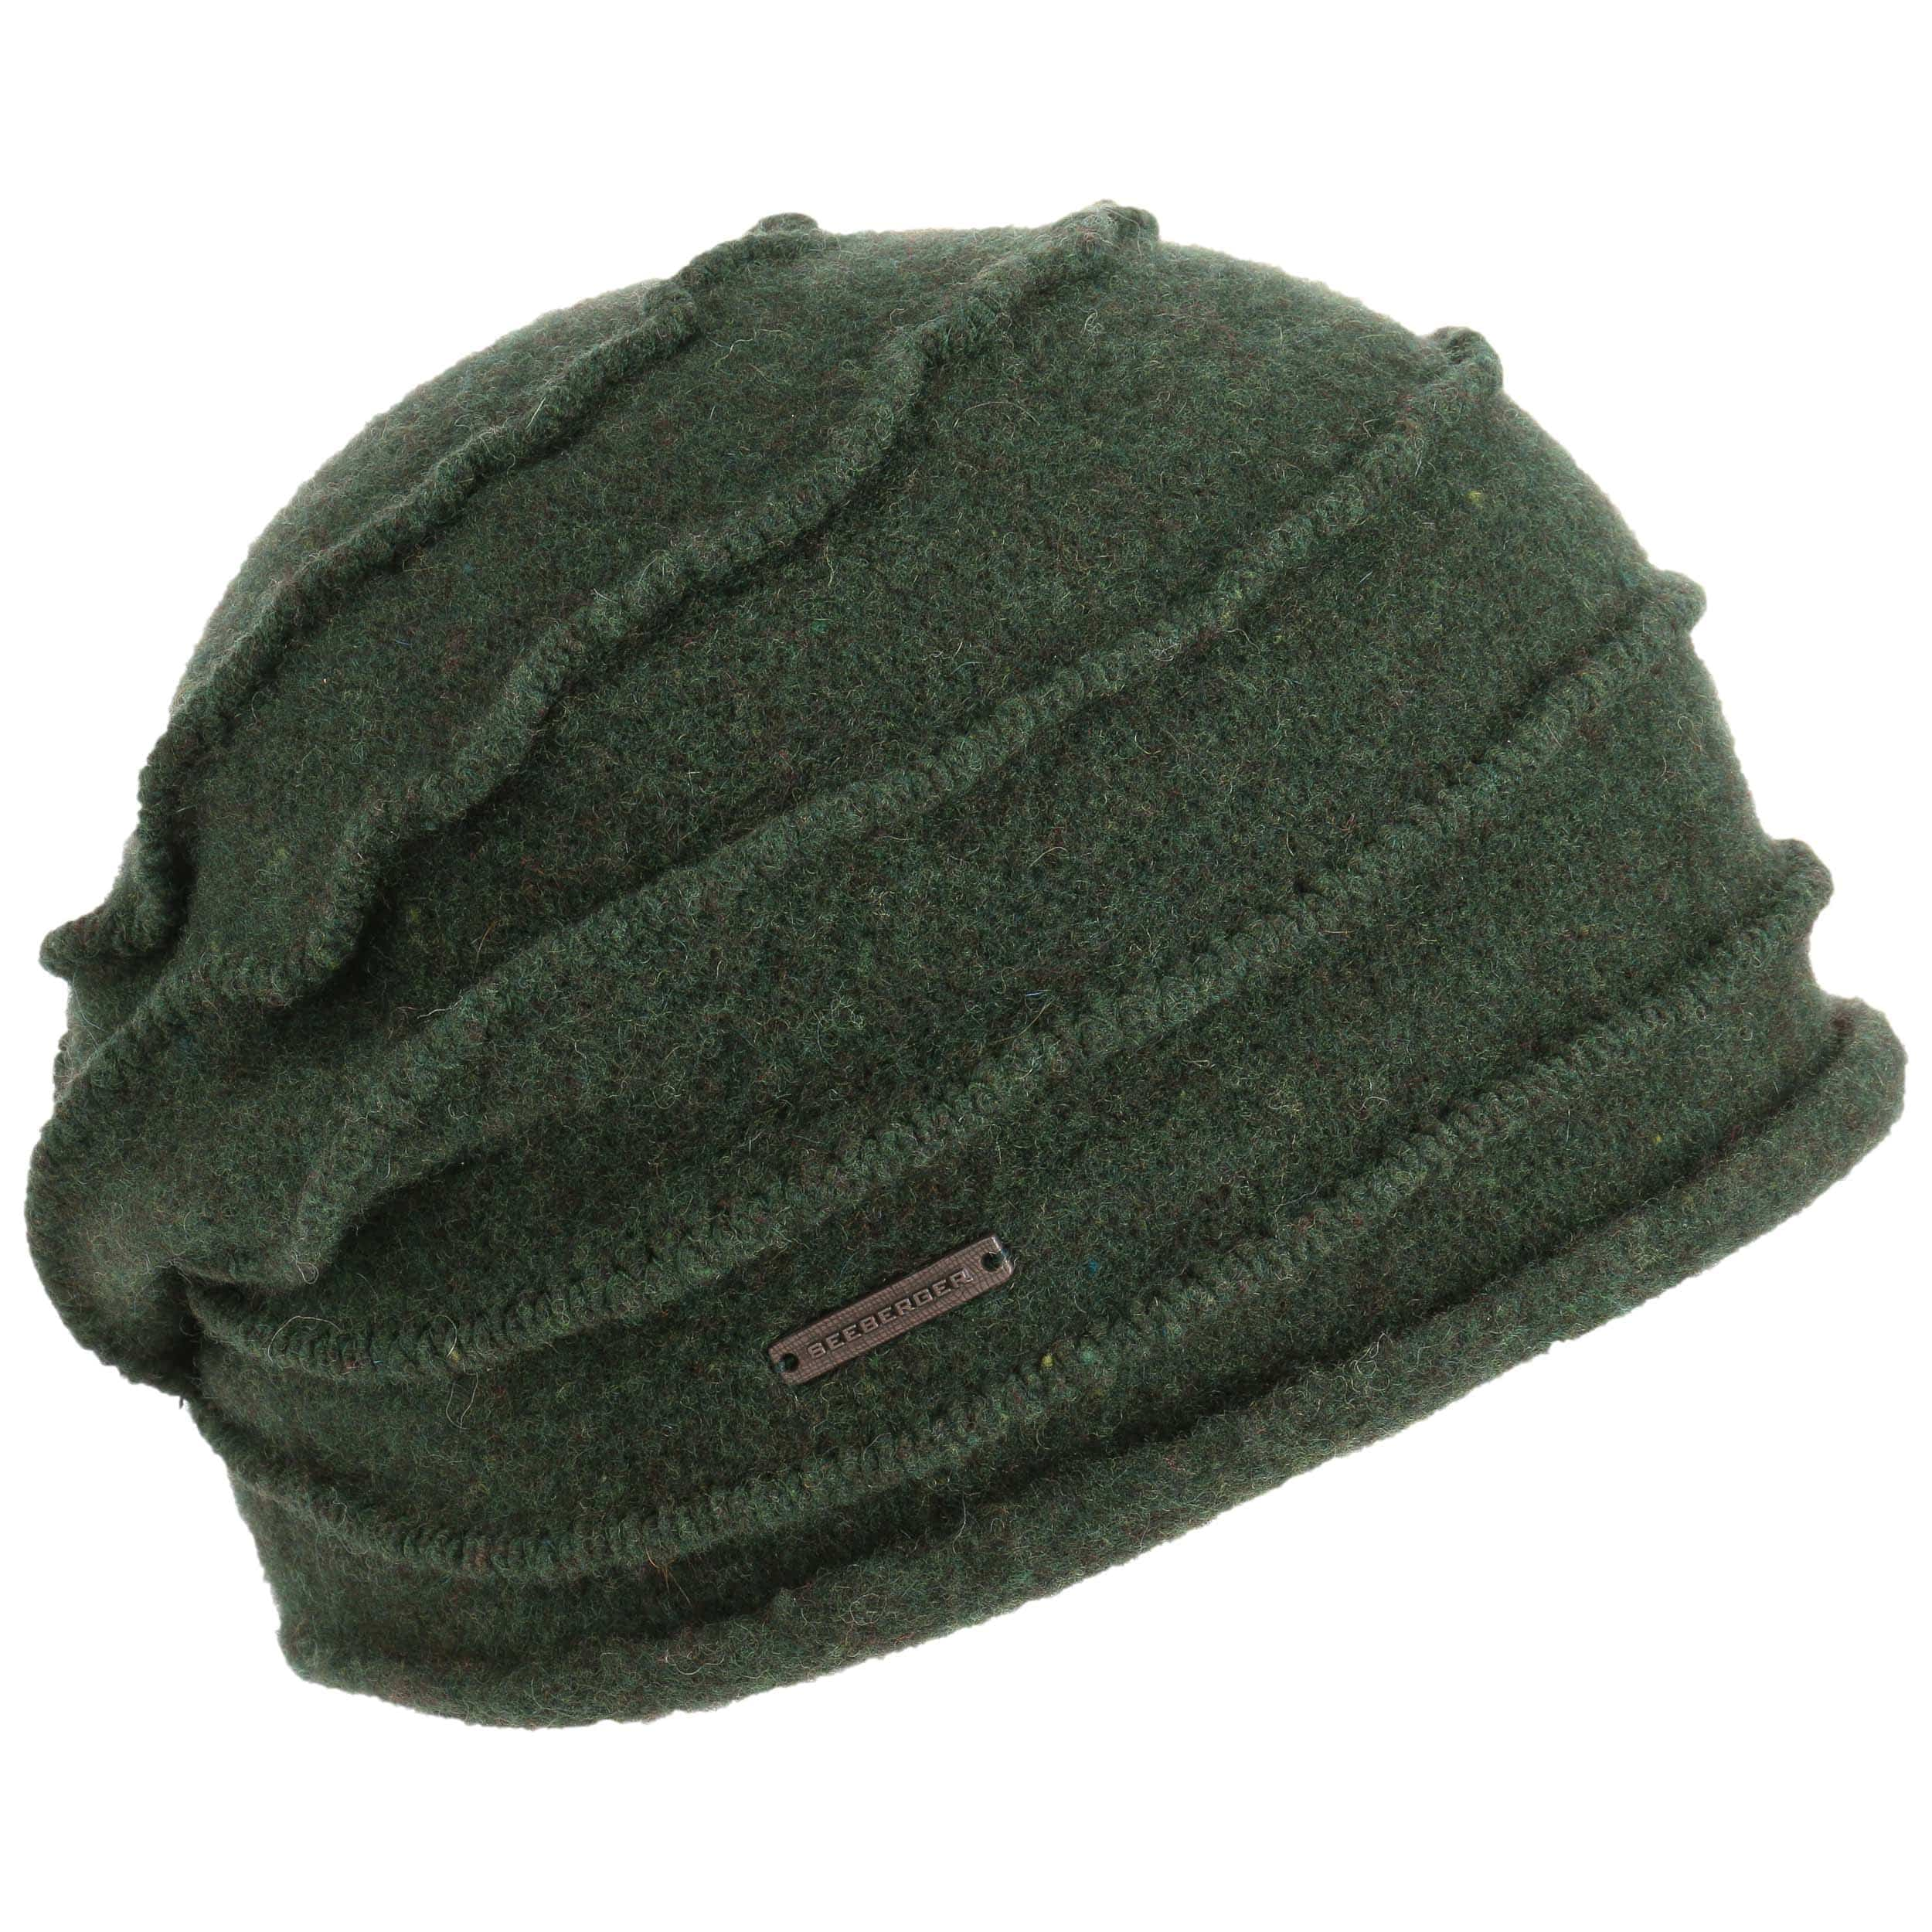 4e9a16ffd7d ... Selifa Milled Wool Hat by Seeberger - green 1 ...